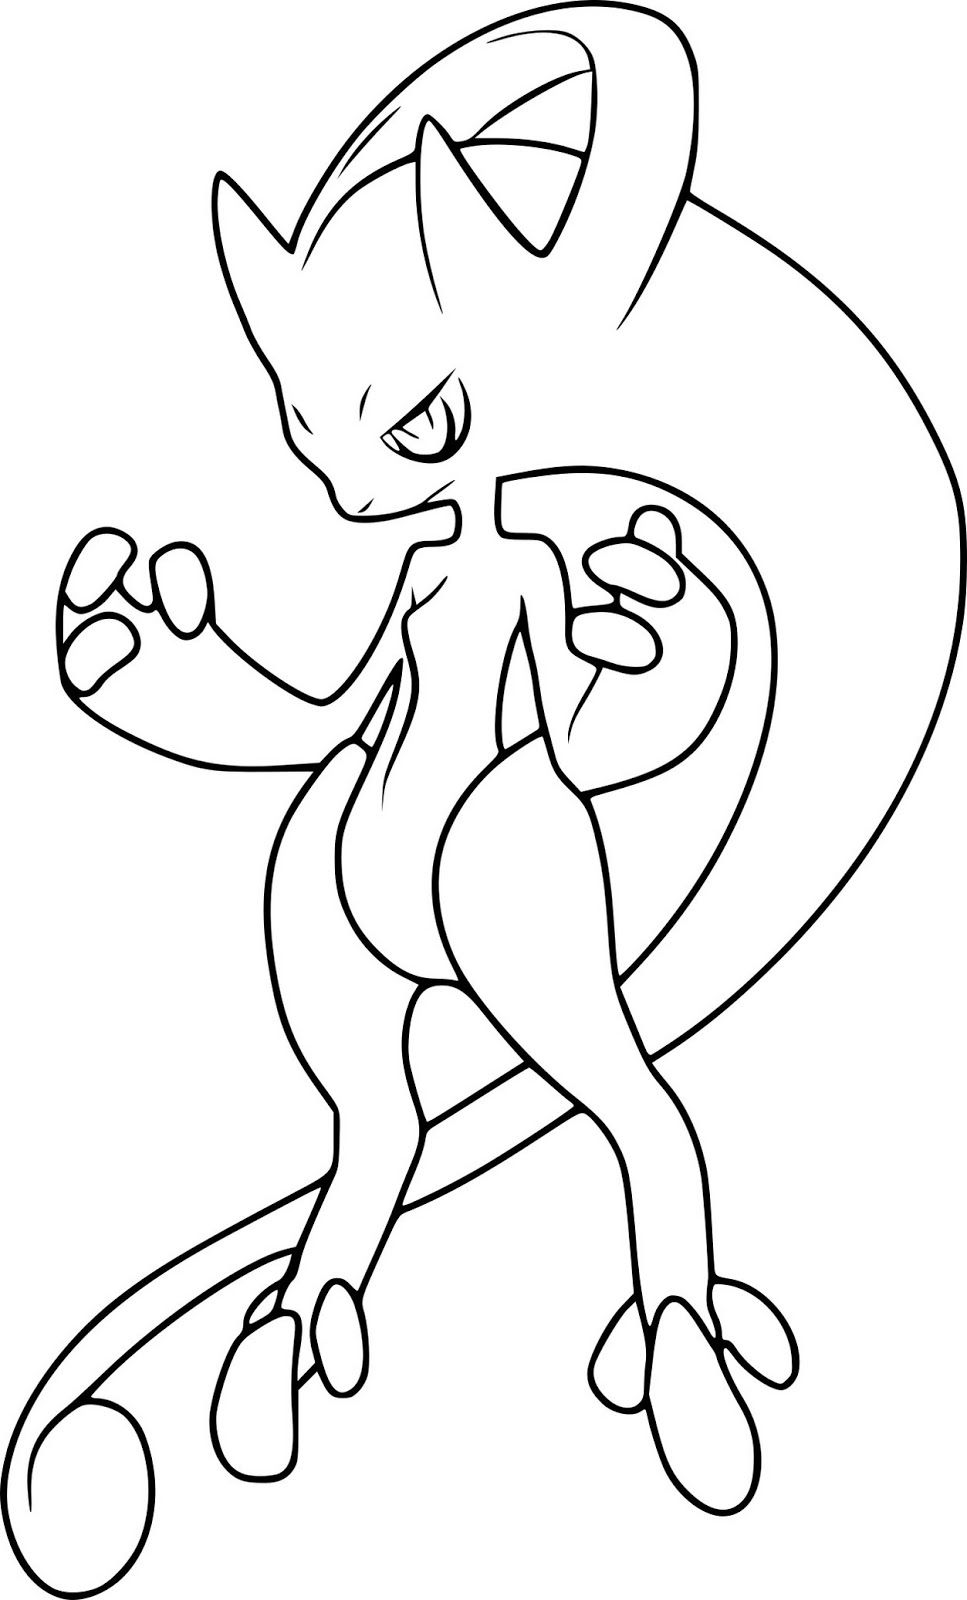 Mega Mewtwo Y Coloring Page In 2020 Pokemon Coloring Pages Pokemon Coloring Pokemon Coloring Sheets